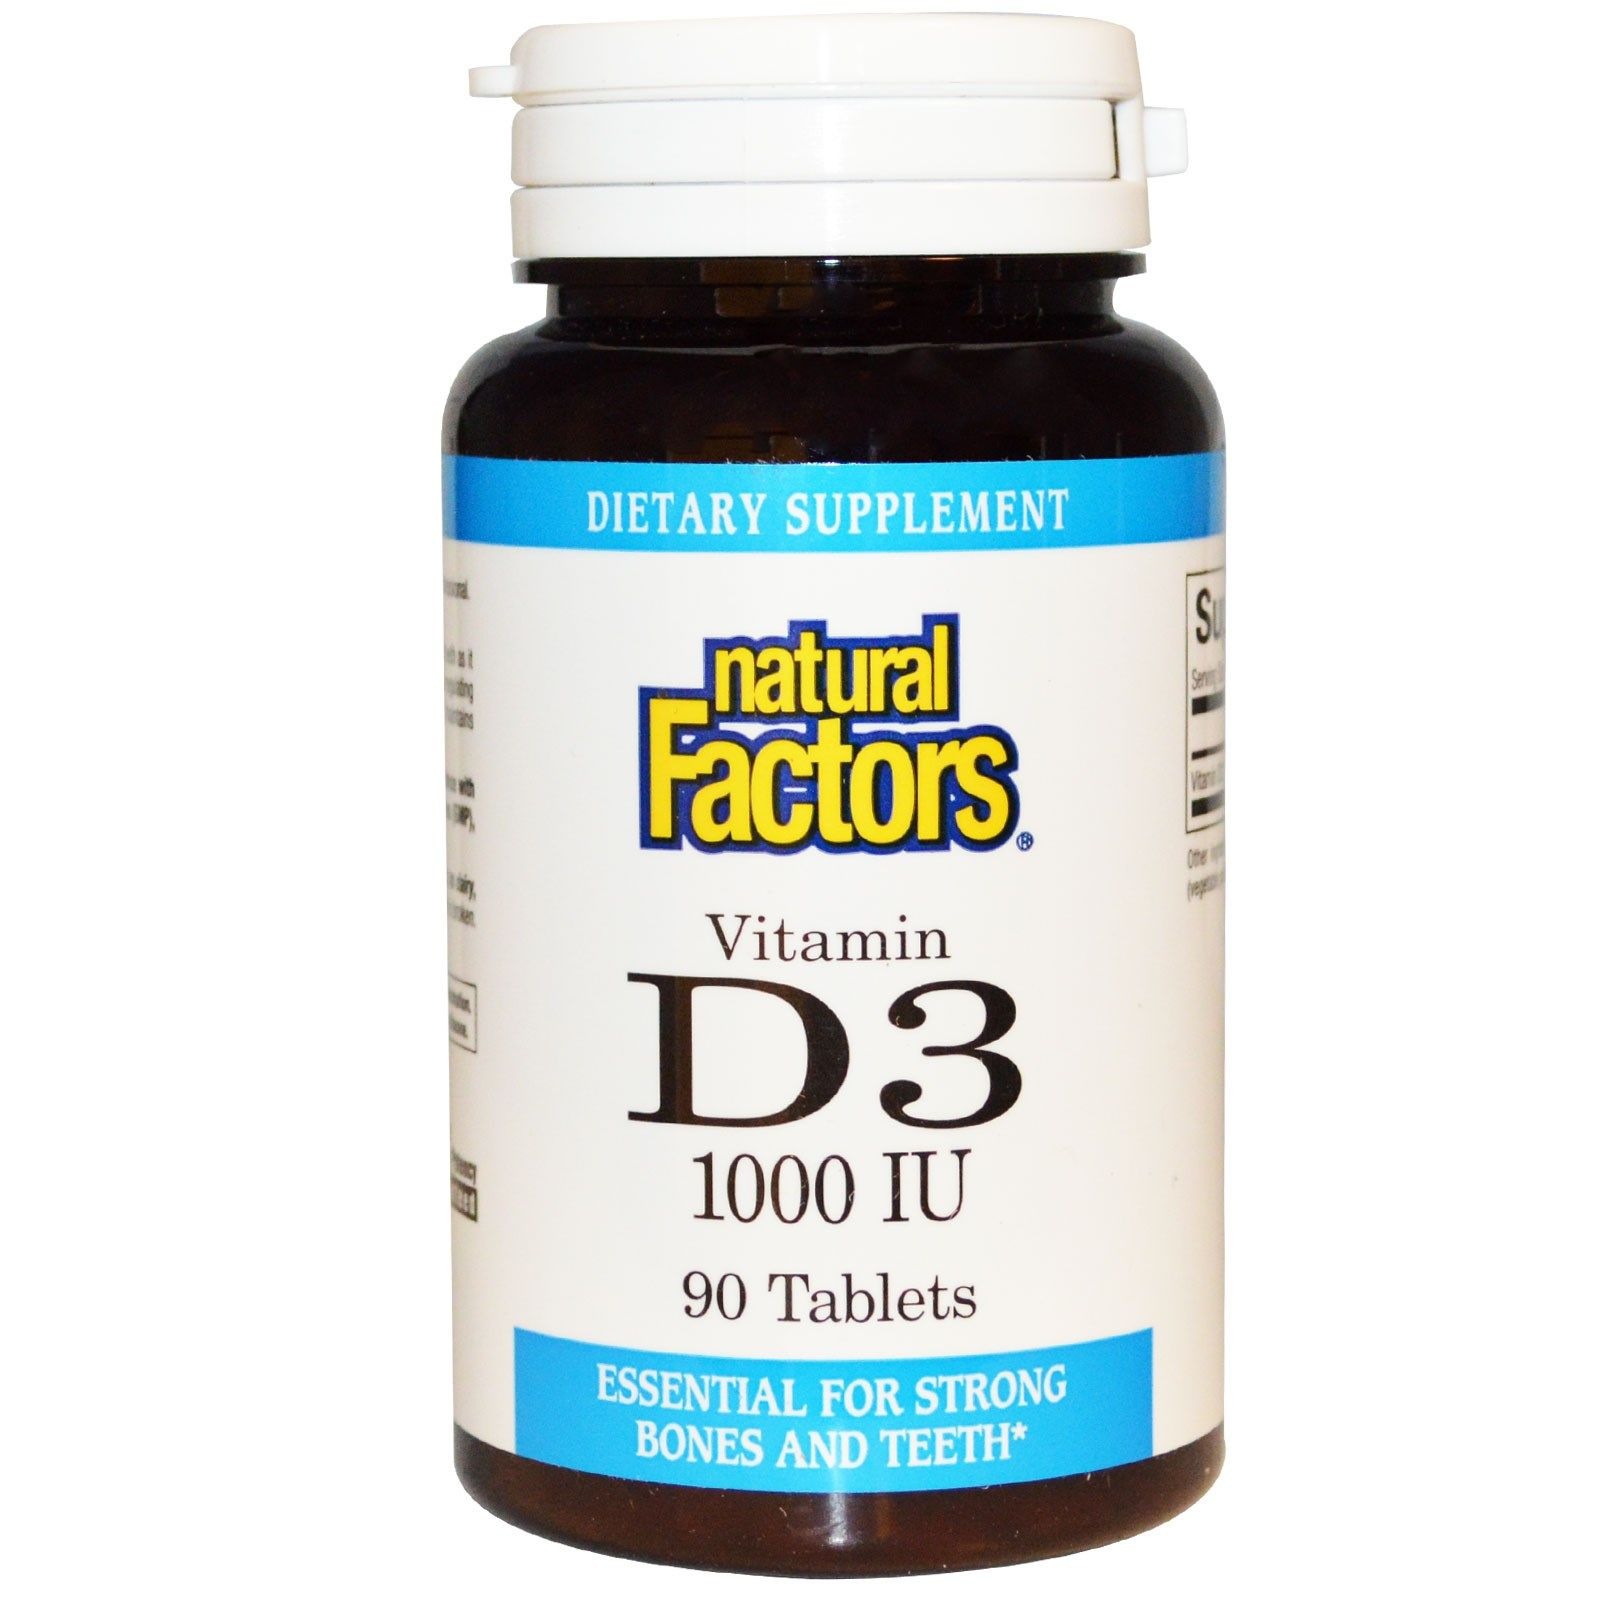 Natural Factors, Vitamin D3, 1000 IU, 90 Tablets Витамины